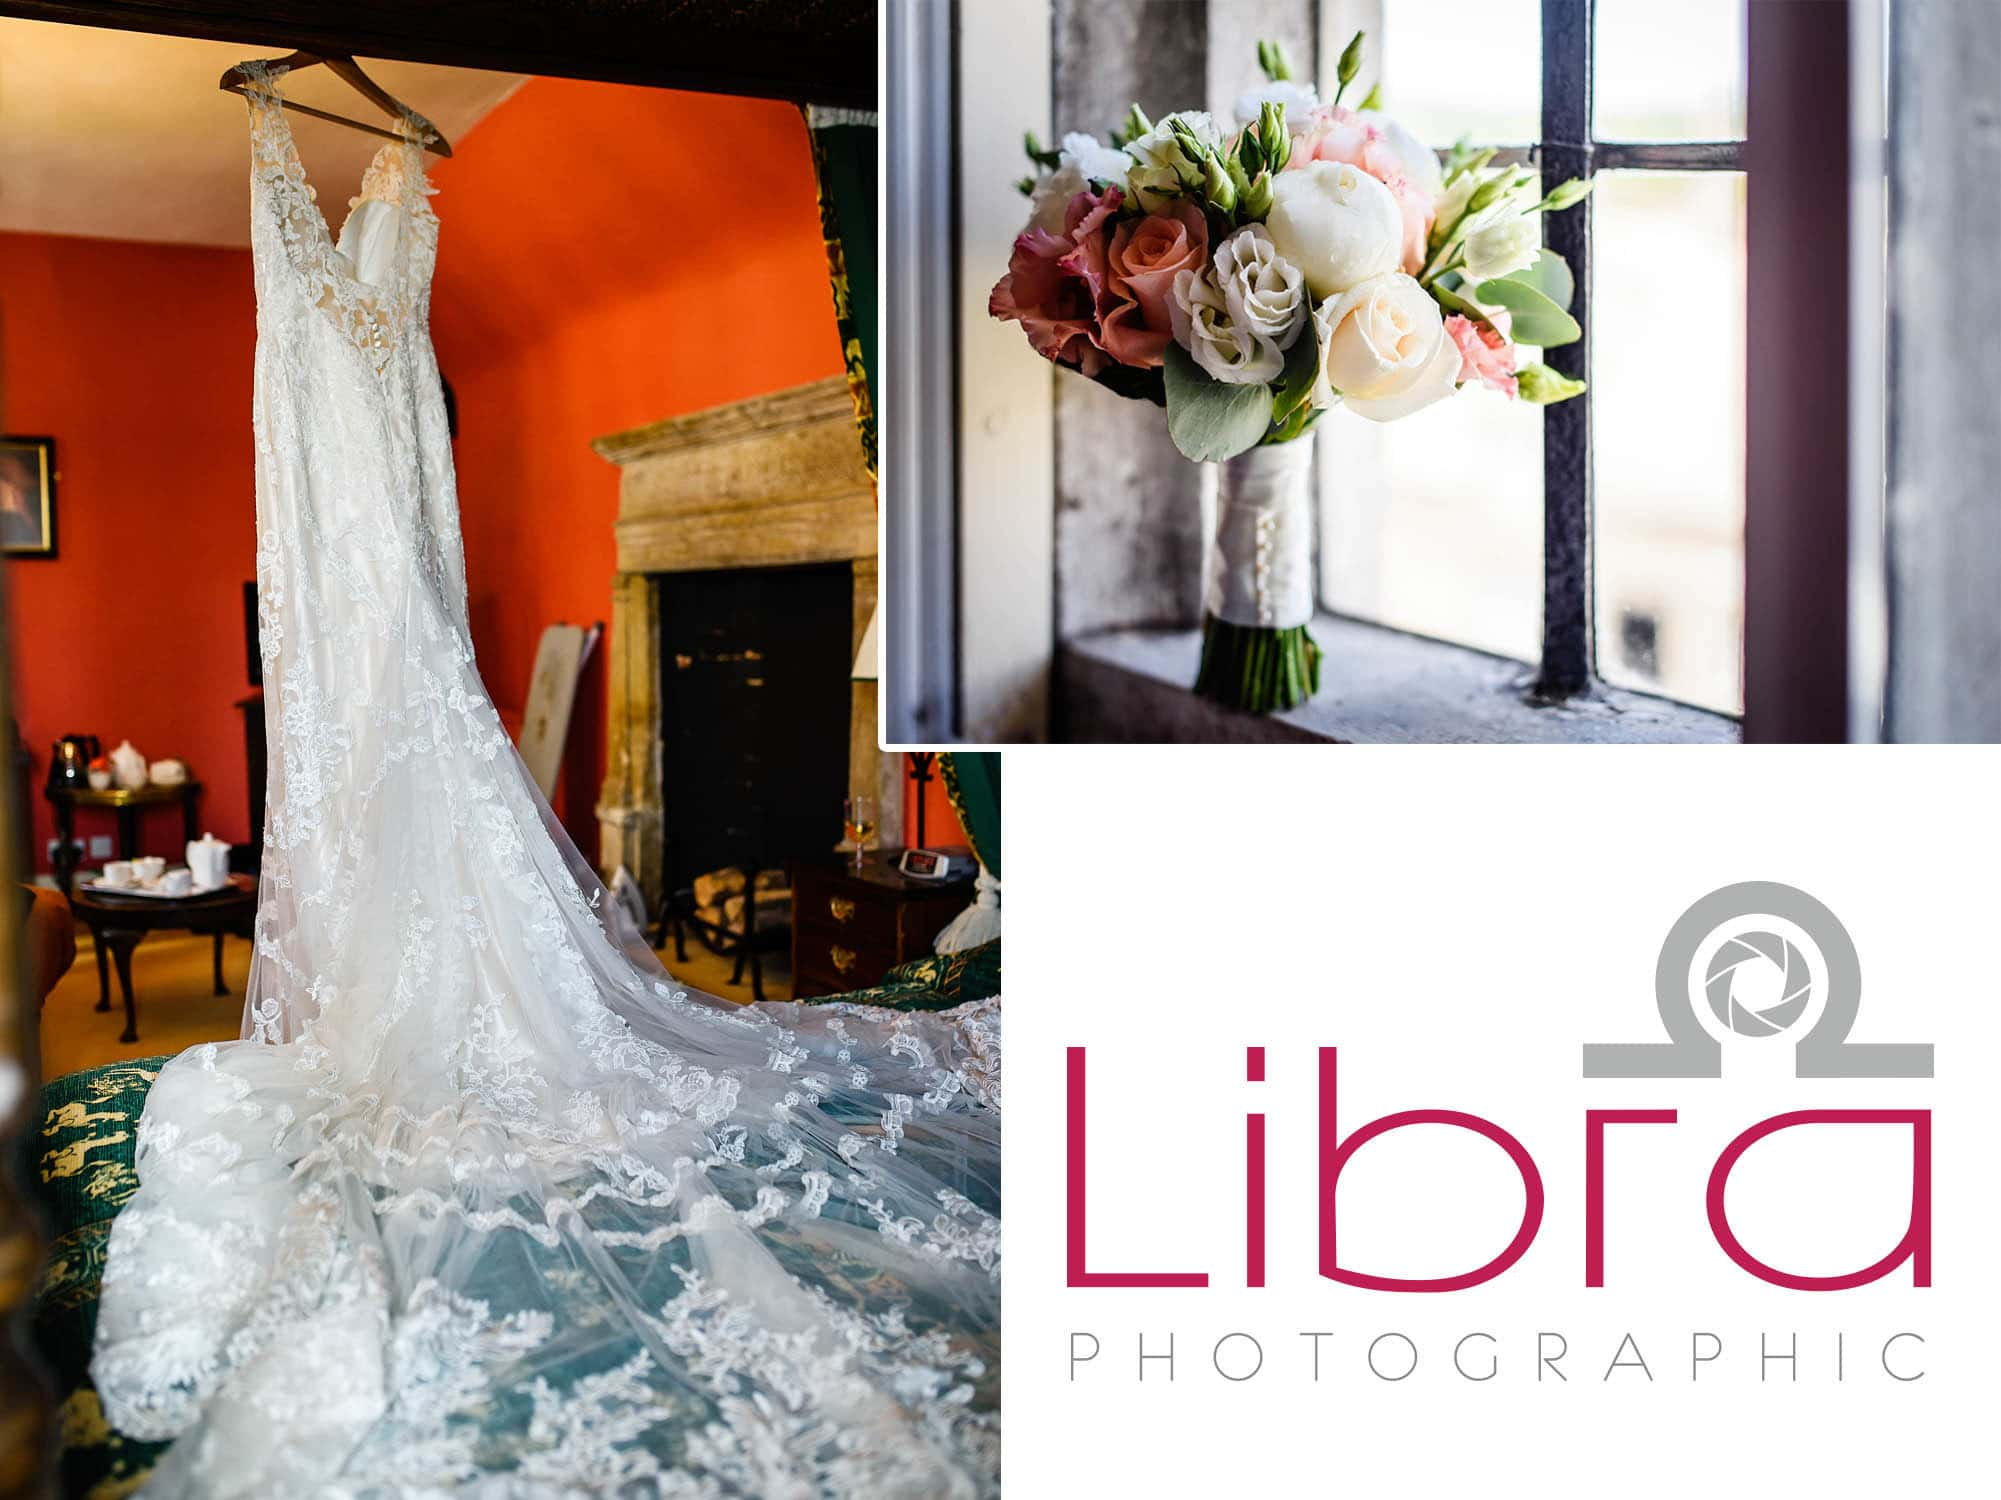 Wedding dress and Bouquet at Mortons House Hotel